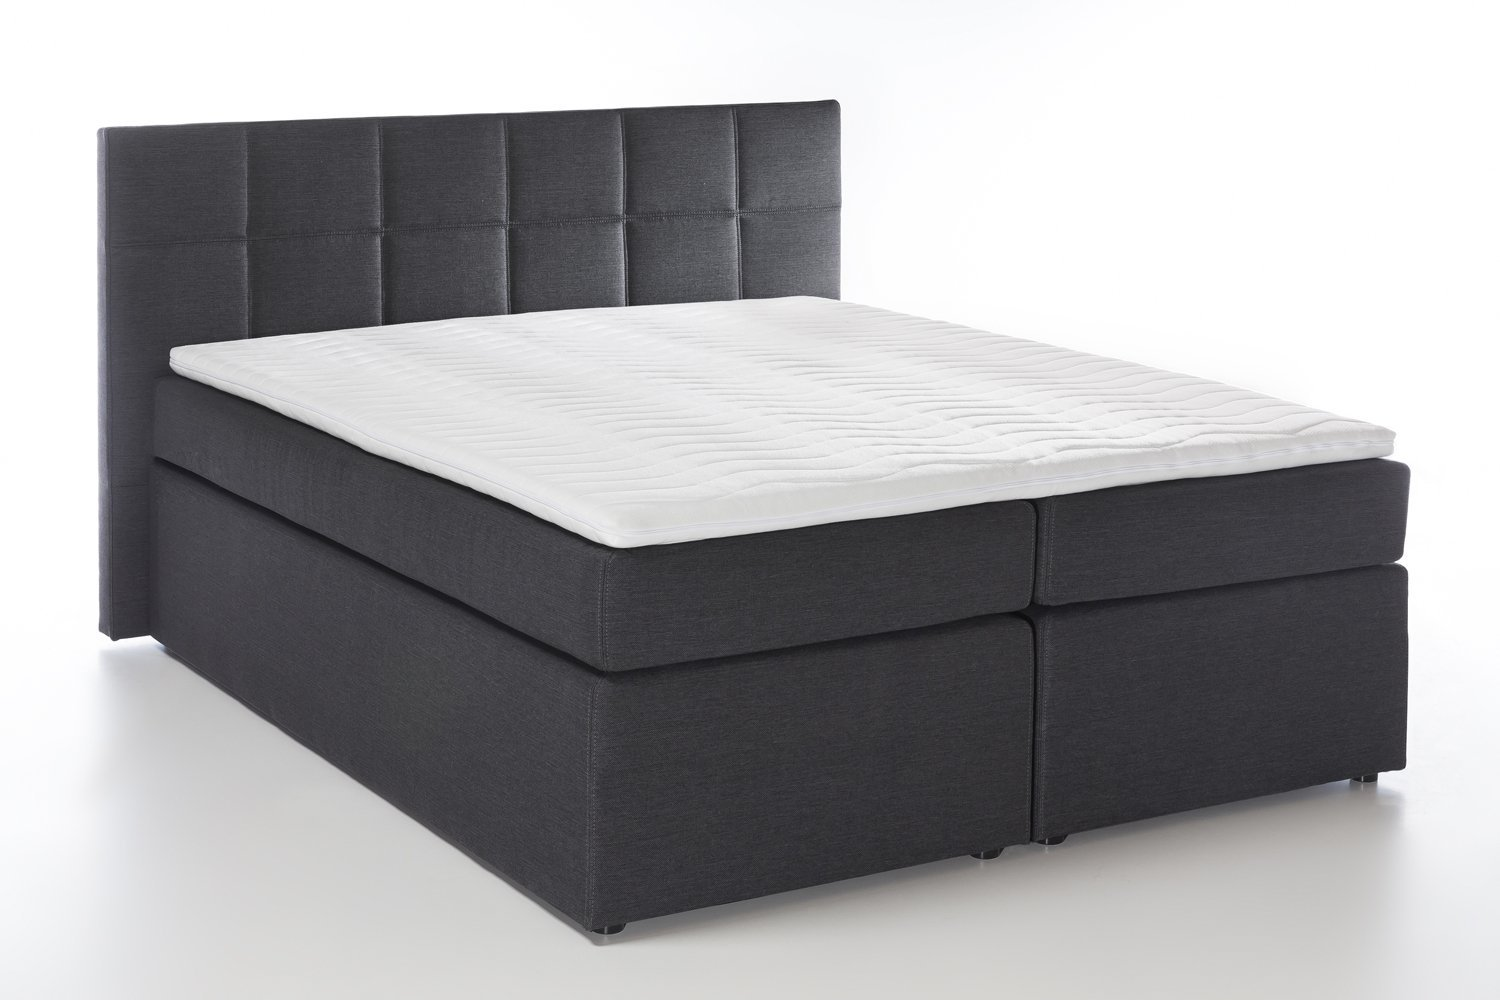 boxspringbett ikea test neuesten design. Black Bedroom Furniture Sets. Home Design Ideas